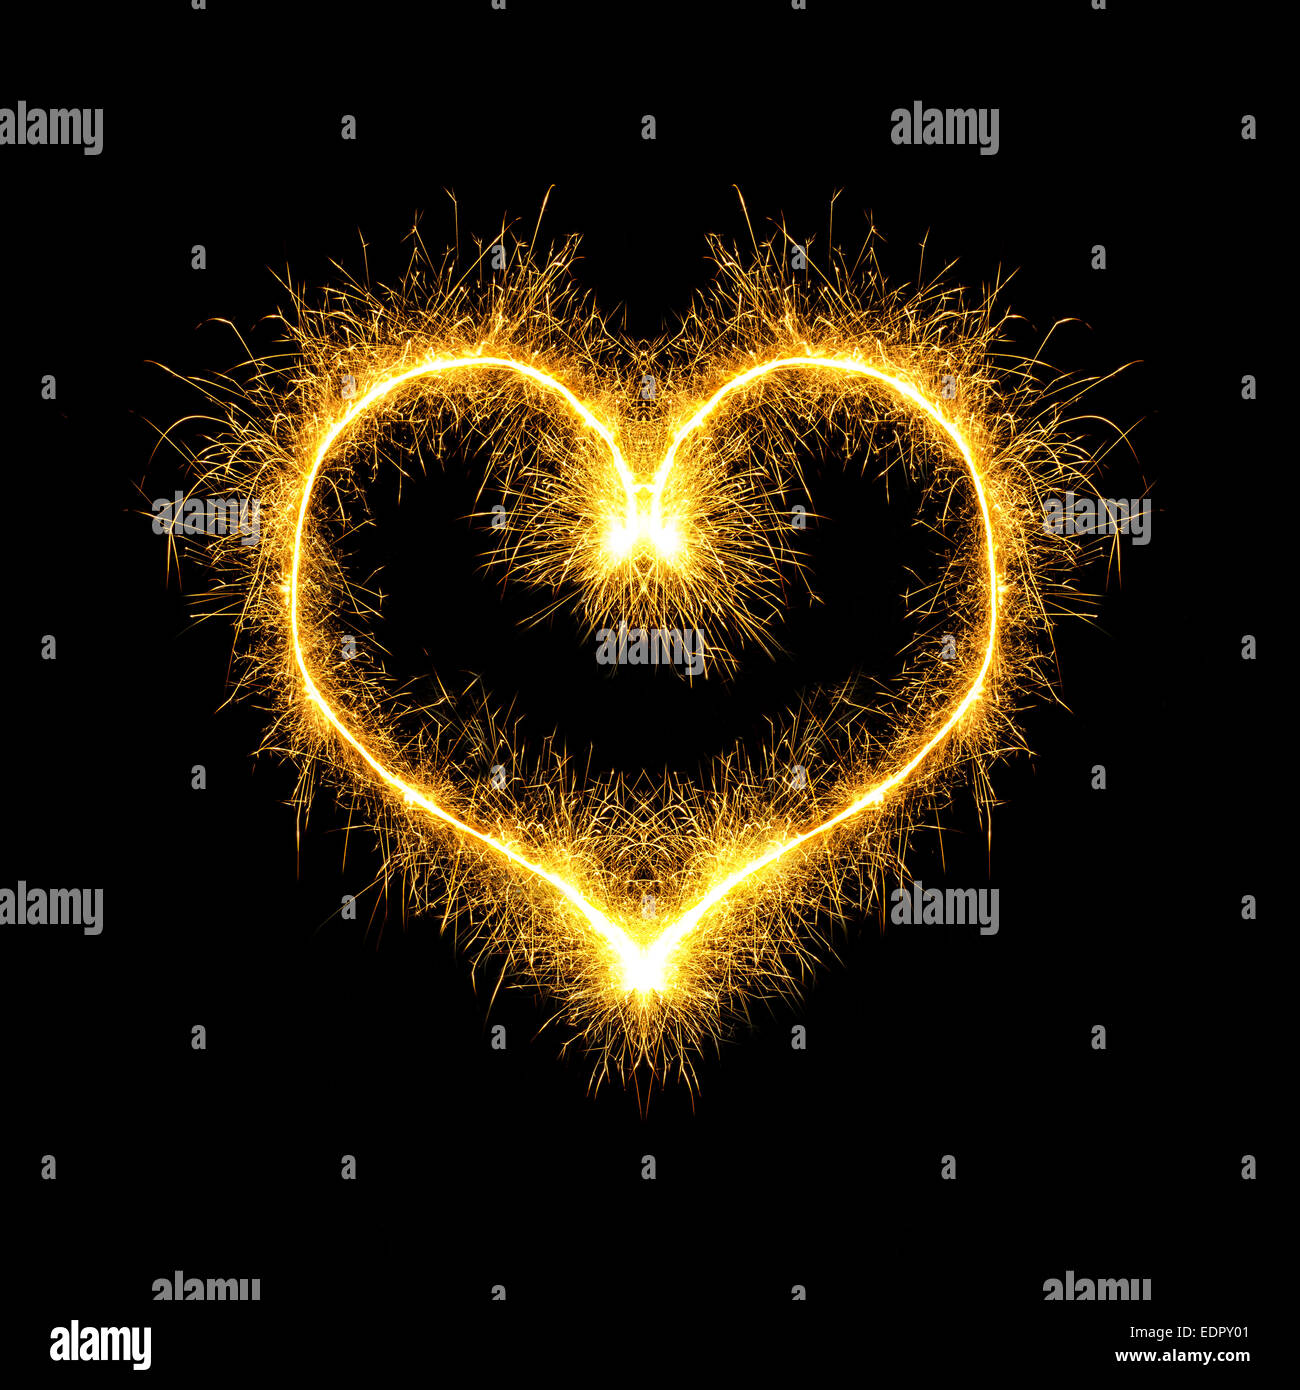 Sparking heart over black background Stock Photo